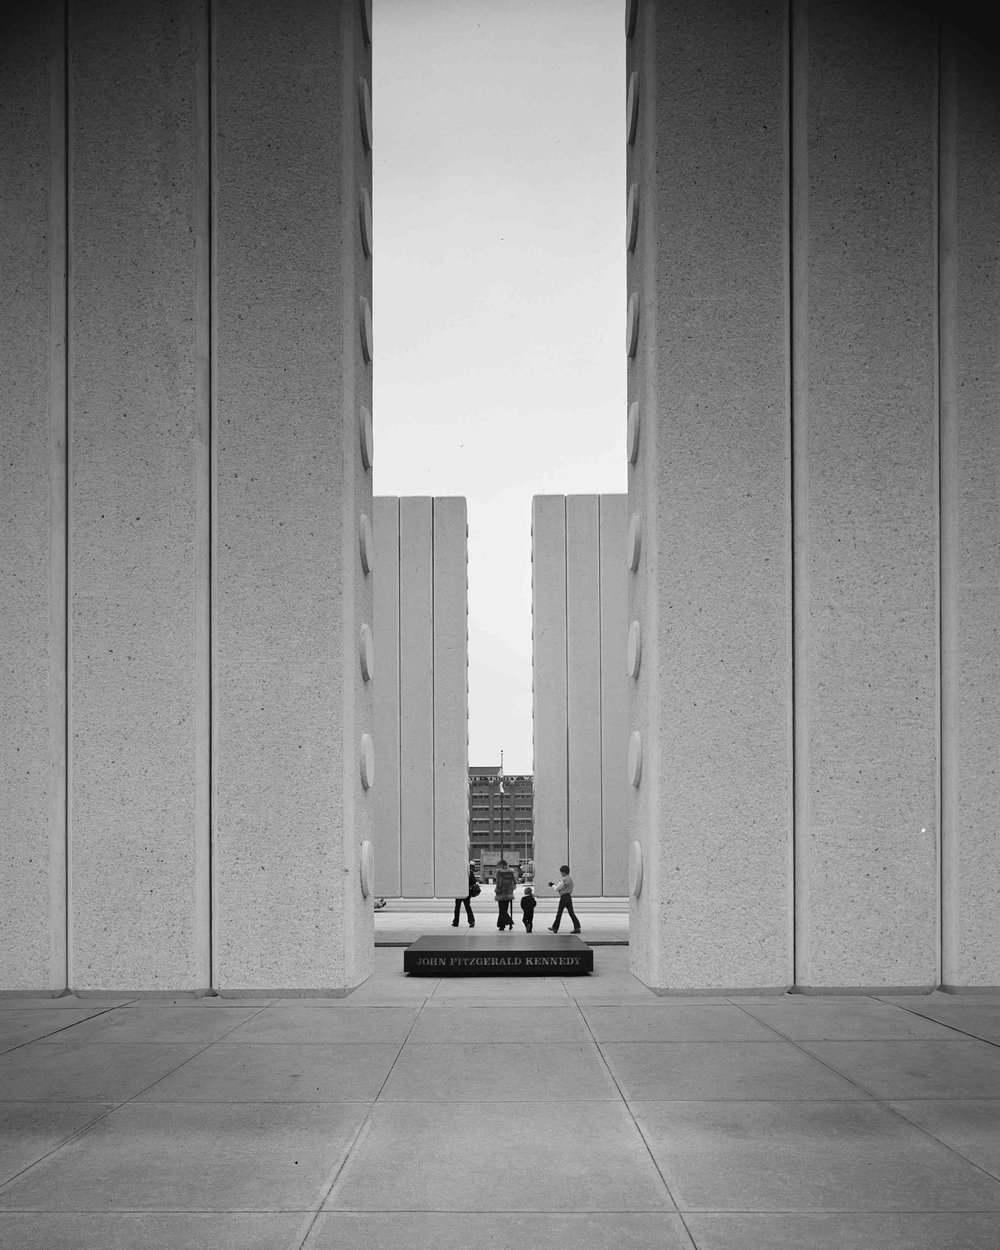 Philip Johnson, John Fitzgerald Kennedy Memorial (Dallas, TX) 1970